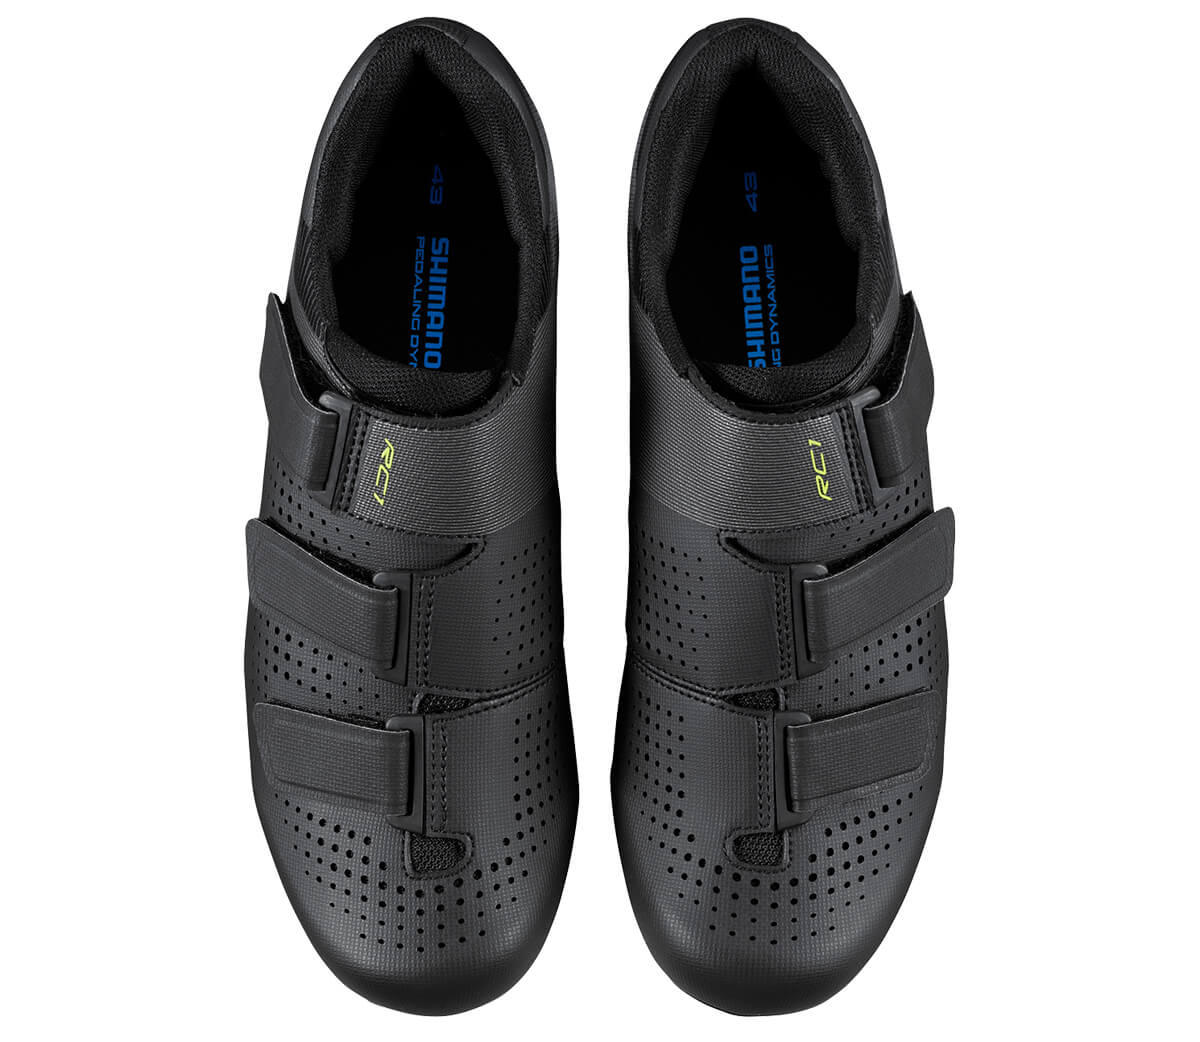 Shimano RC100 Road shoes